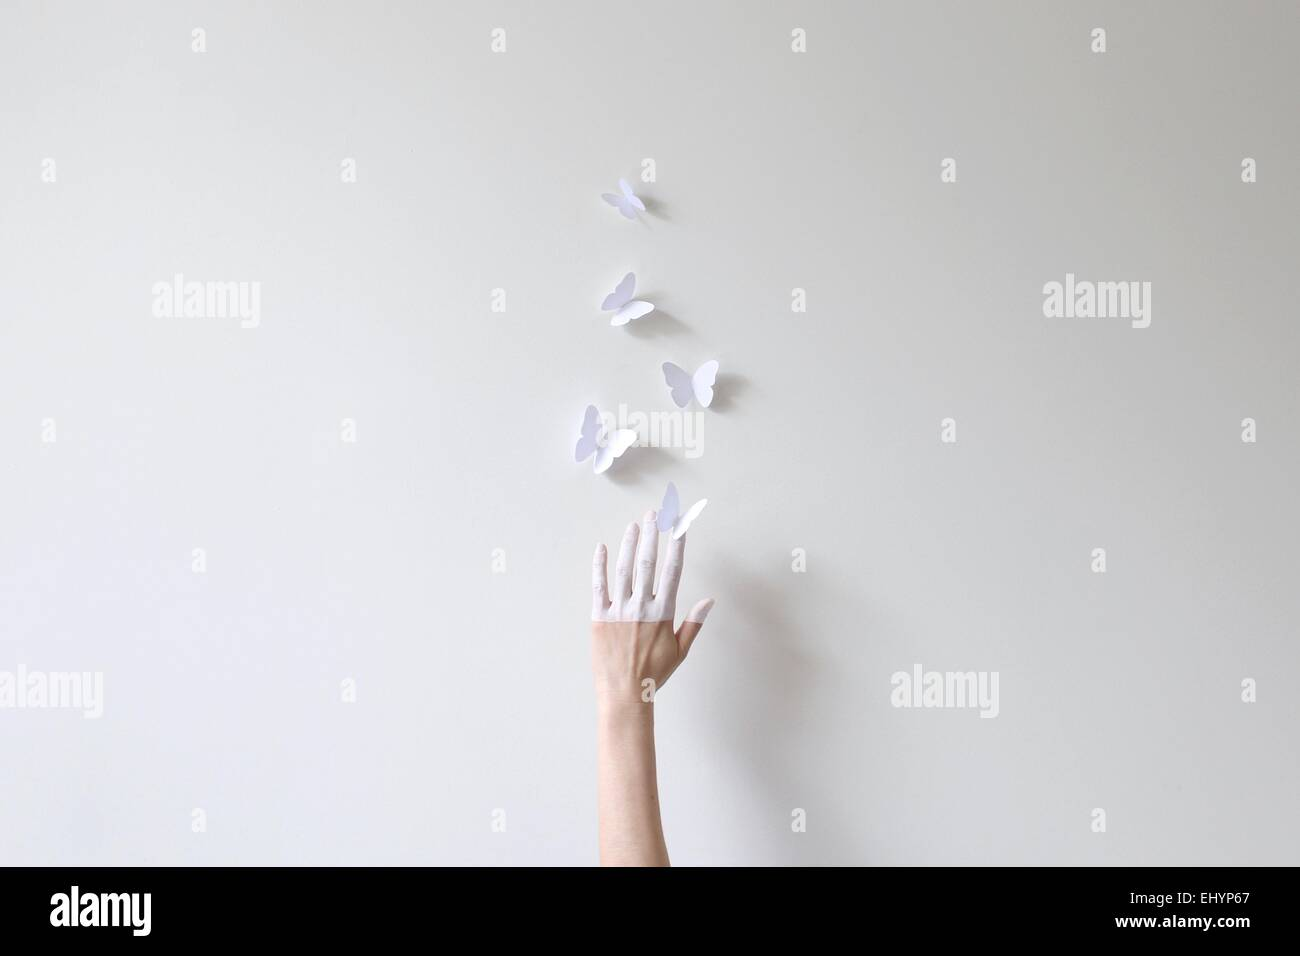 A hand half painted in white reaching for paper butterflies against white wall - Stock Image